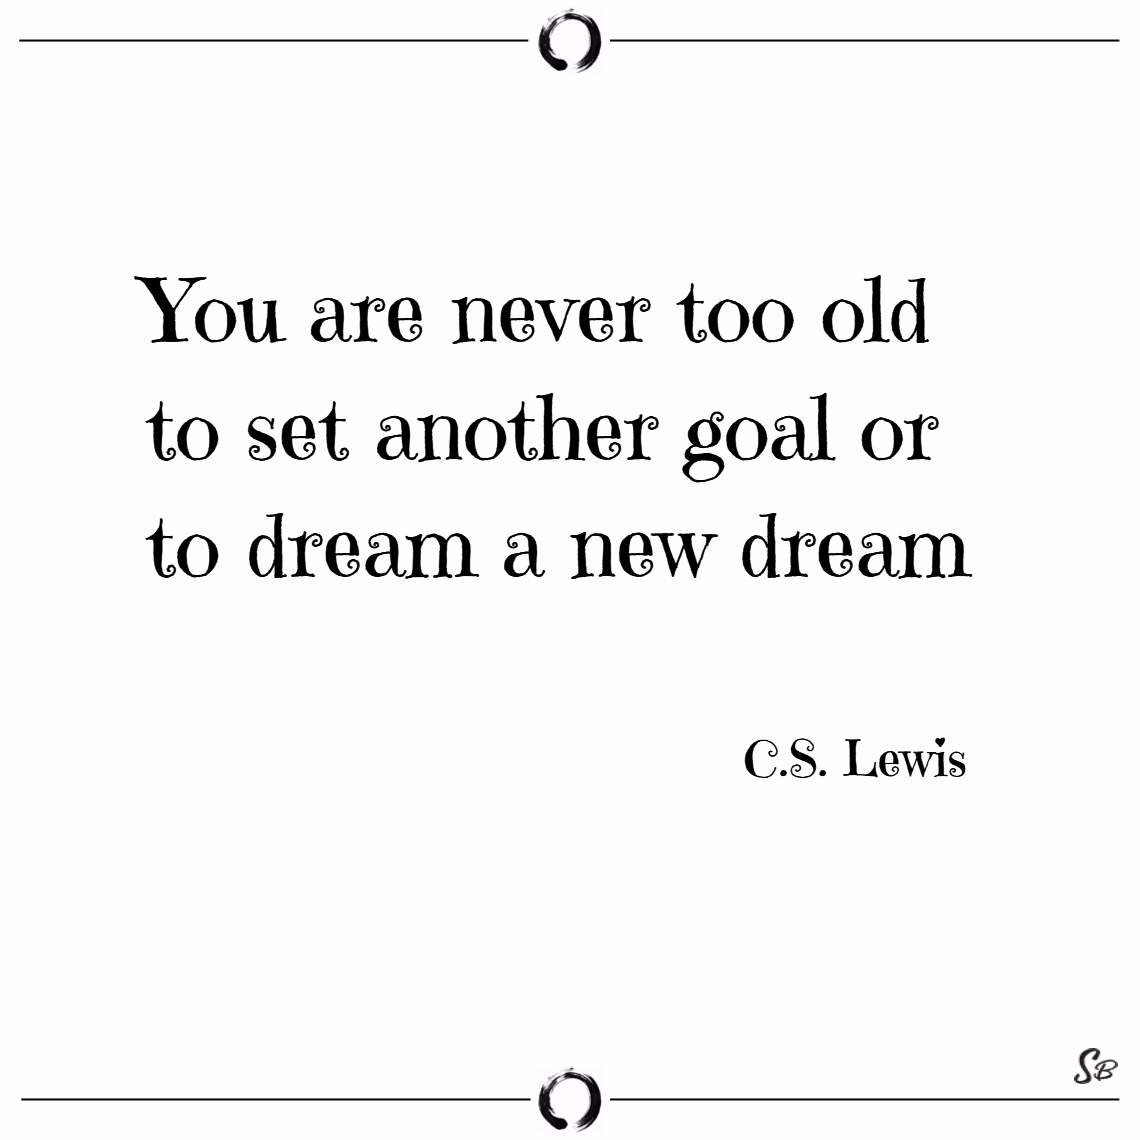 You are never too old to set another goal or to dream a new dream. – c.s. lewis